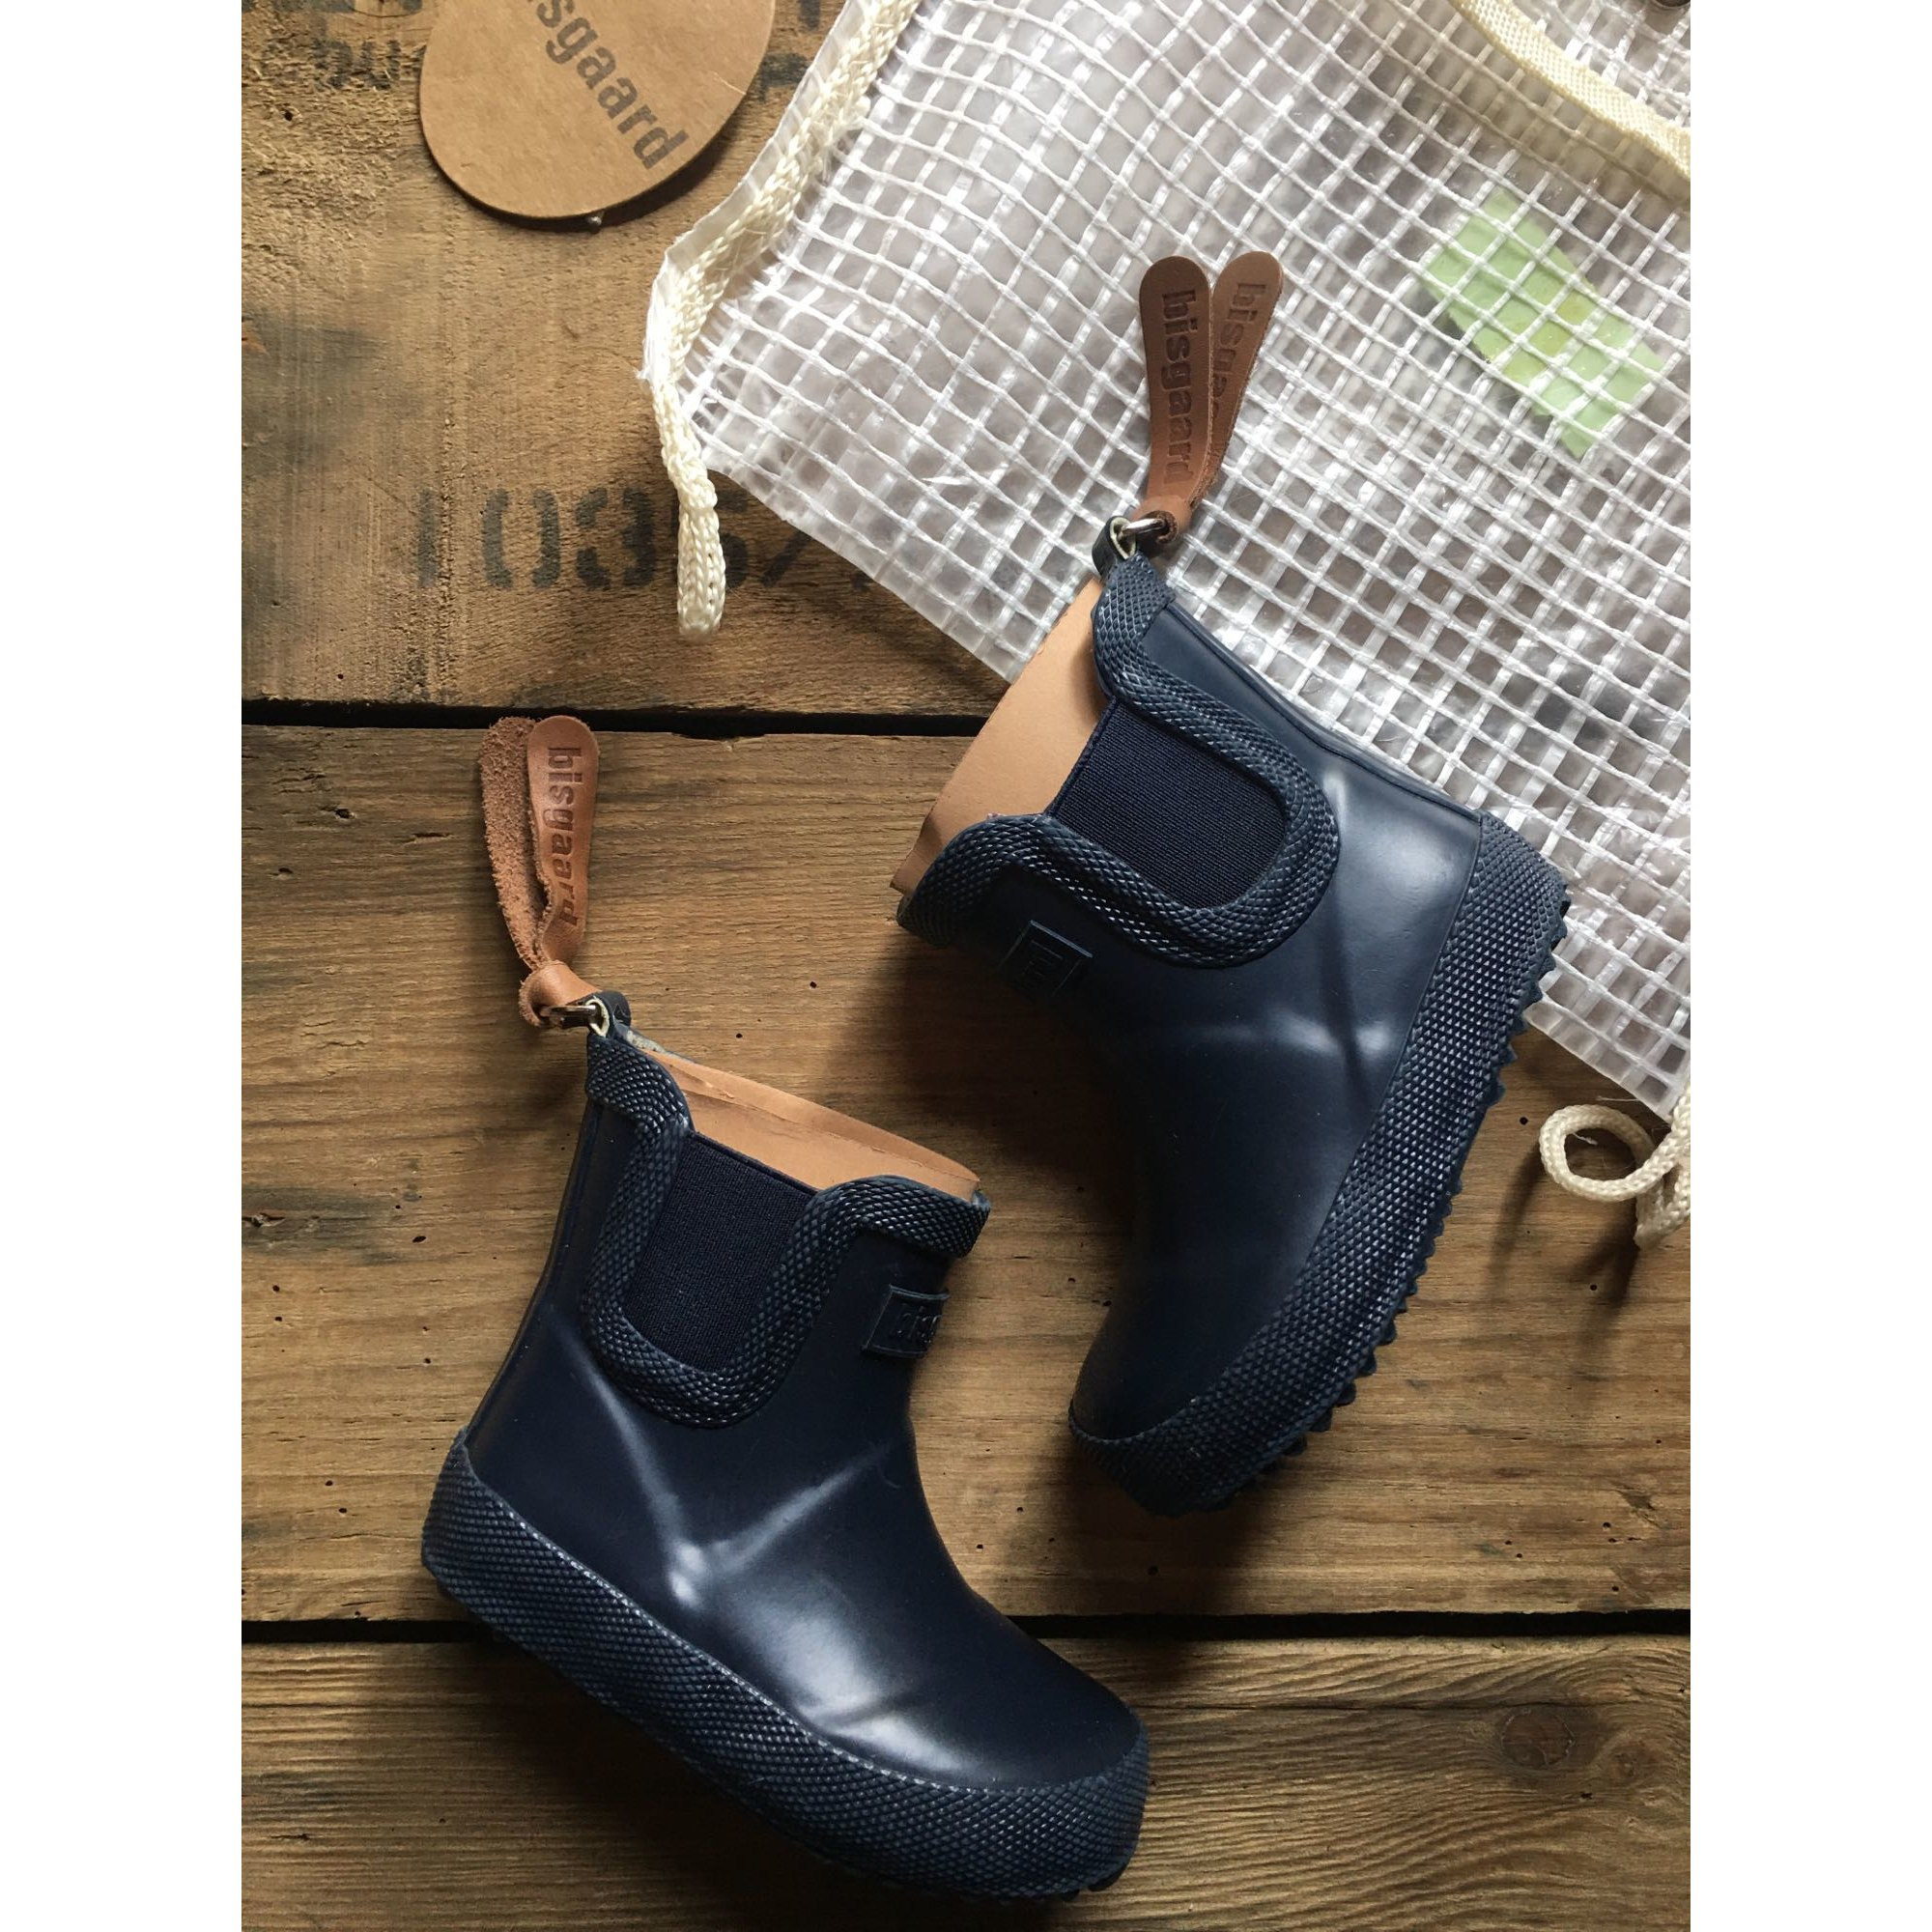 Ankle Boots BISGAARD Blue, navy, turquoise